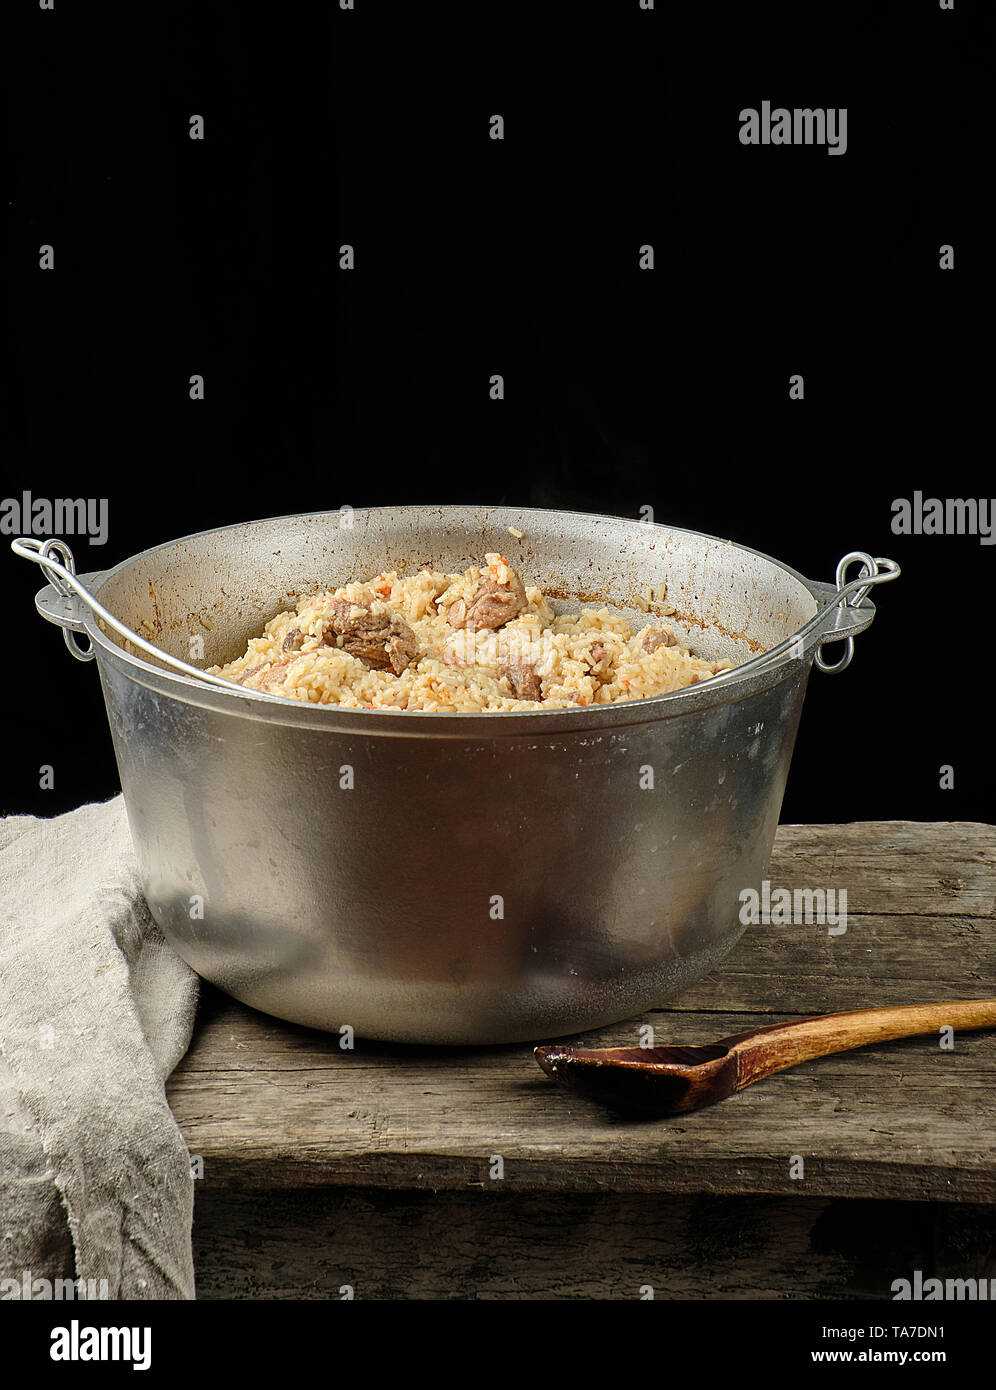 Pilaf is an oriental dish of boiled rice with fat and slices of meat and spices. the dish is cooked in a large aluminum cauldron, black background - Stock Image